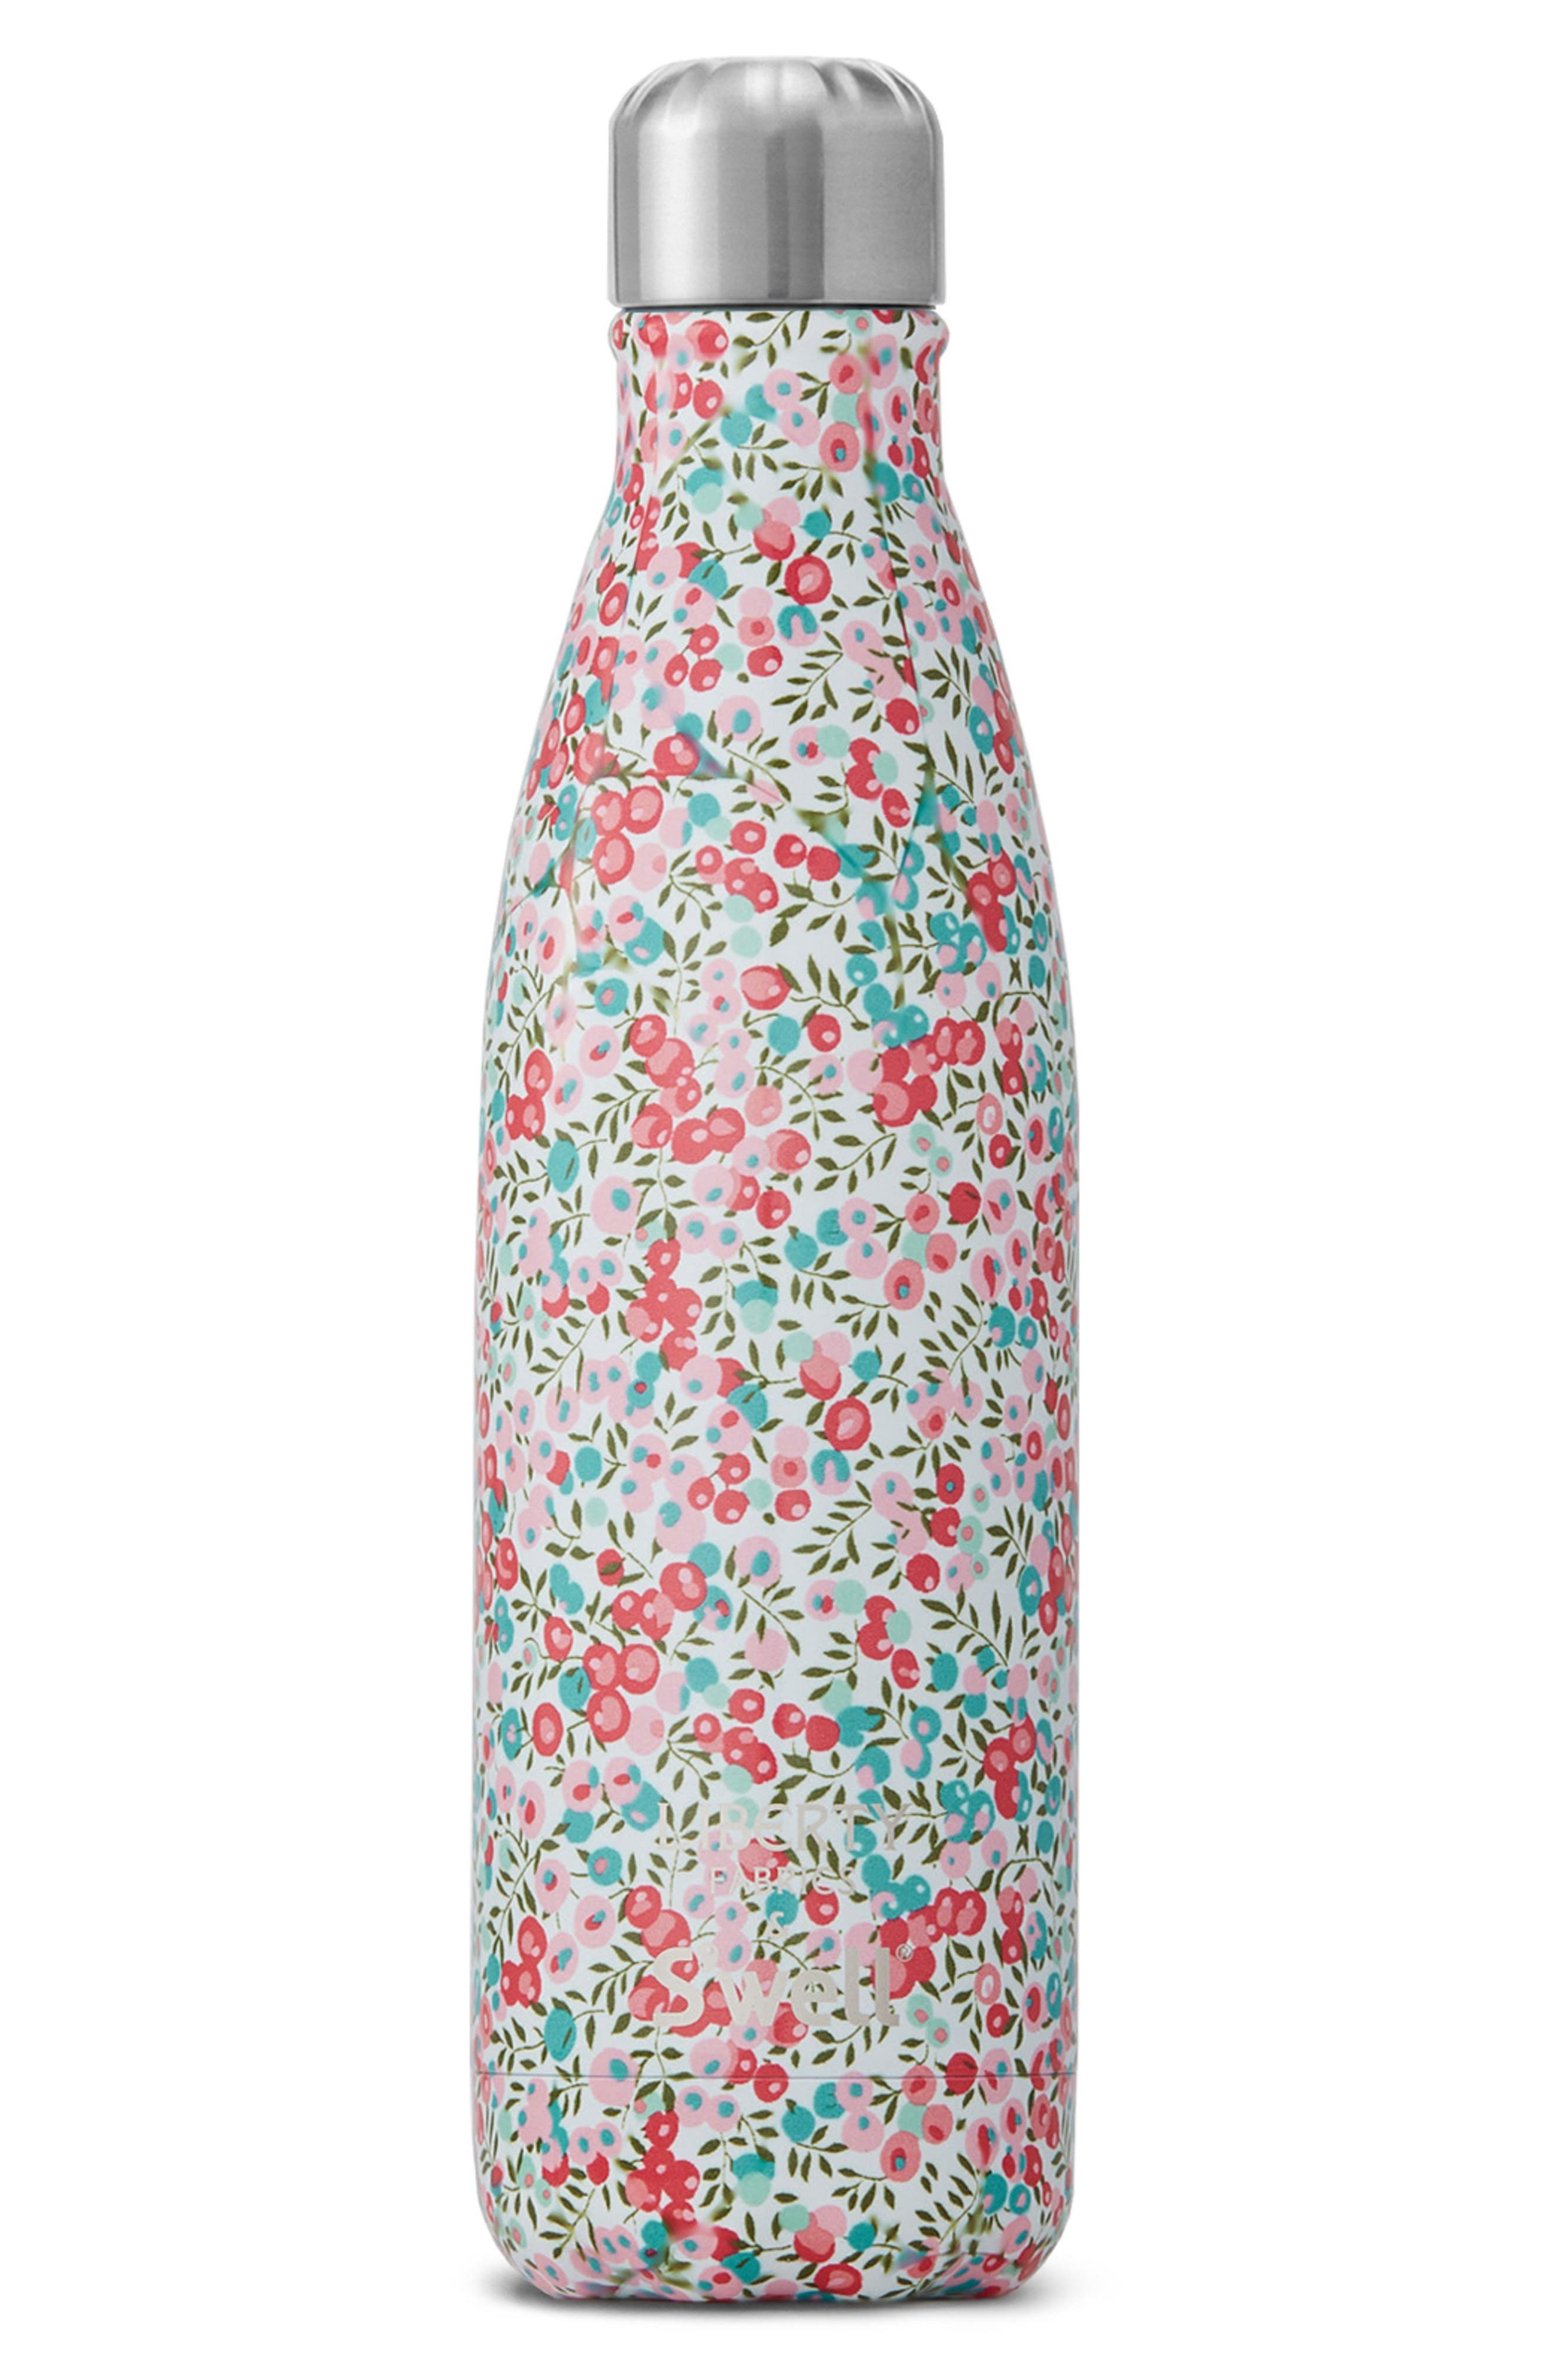 S'well Liberty Fabrics Wiltshire Stainless Steel Water Bottle